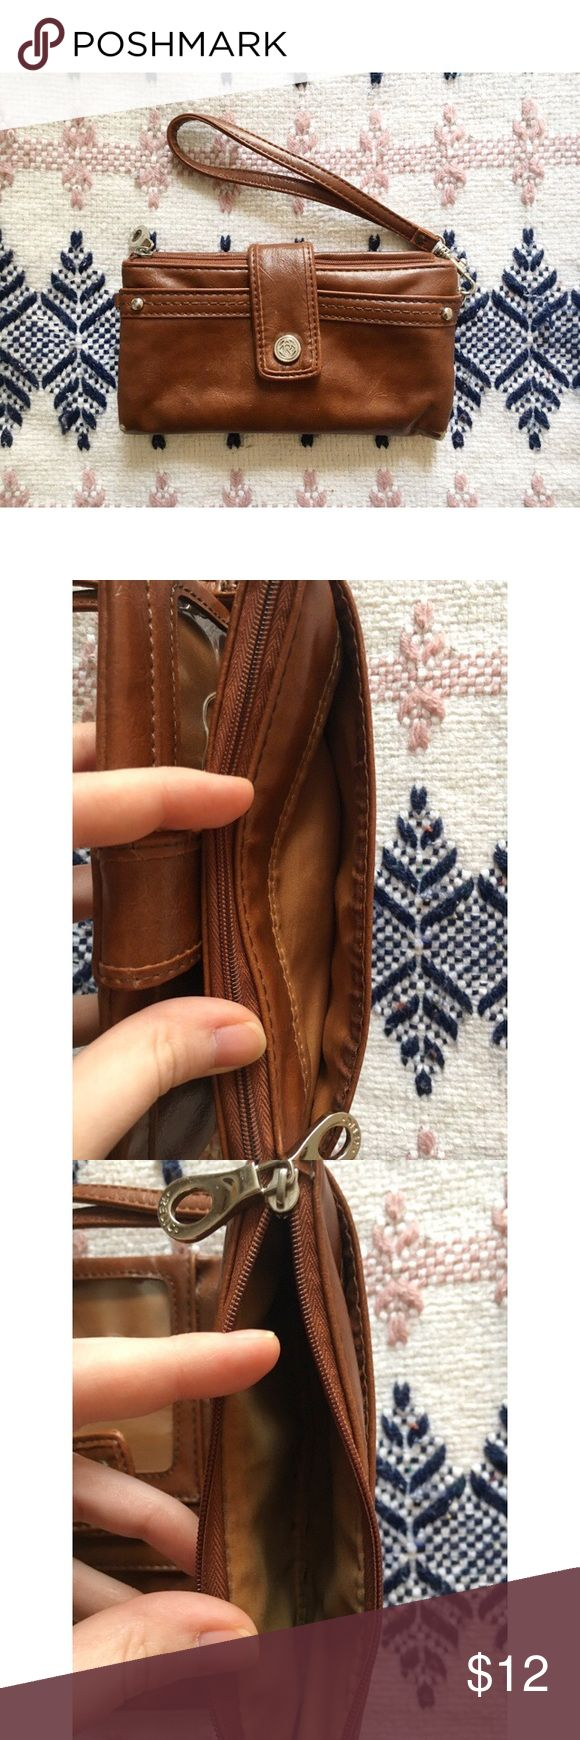 Faux Leather Wallet Wristlet // Perfect faux leather wallet! Fits everything. Wrist strap can be taken off completely or used for keys/keychains. Has card slots w/ one clear slot, three money pockets, an outer change purse compartment with a zipper and another outer pocket. Button closure like a clutch. American Eagle for exposure. Well-loved with gentle wear. 🌞🌻 American Eagle Outfitters Bags Wallets